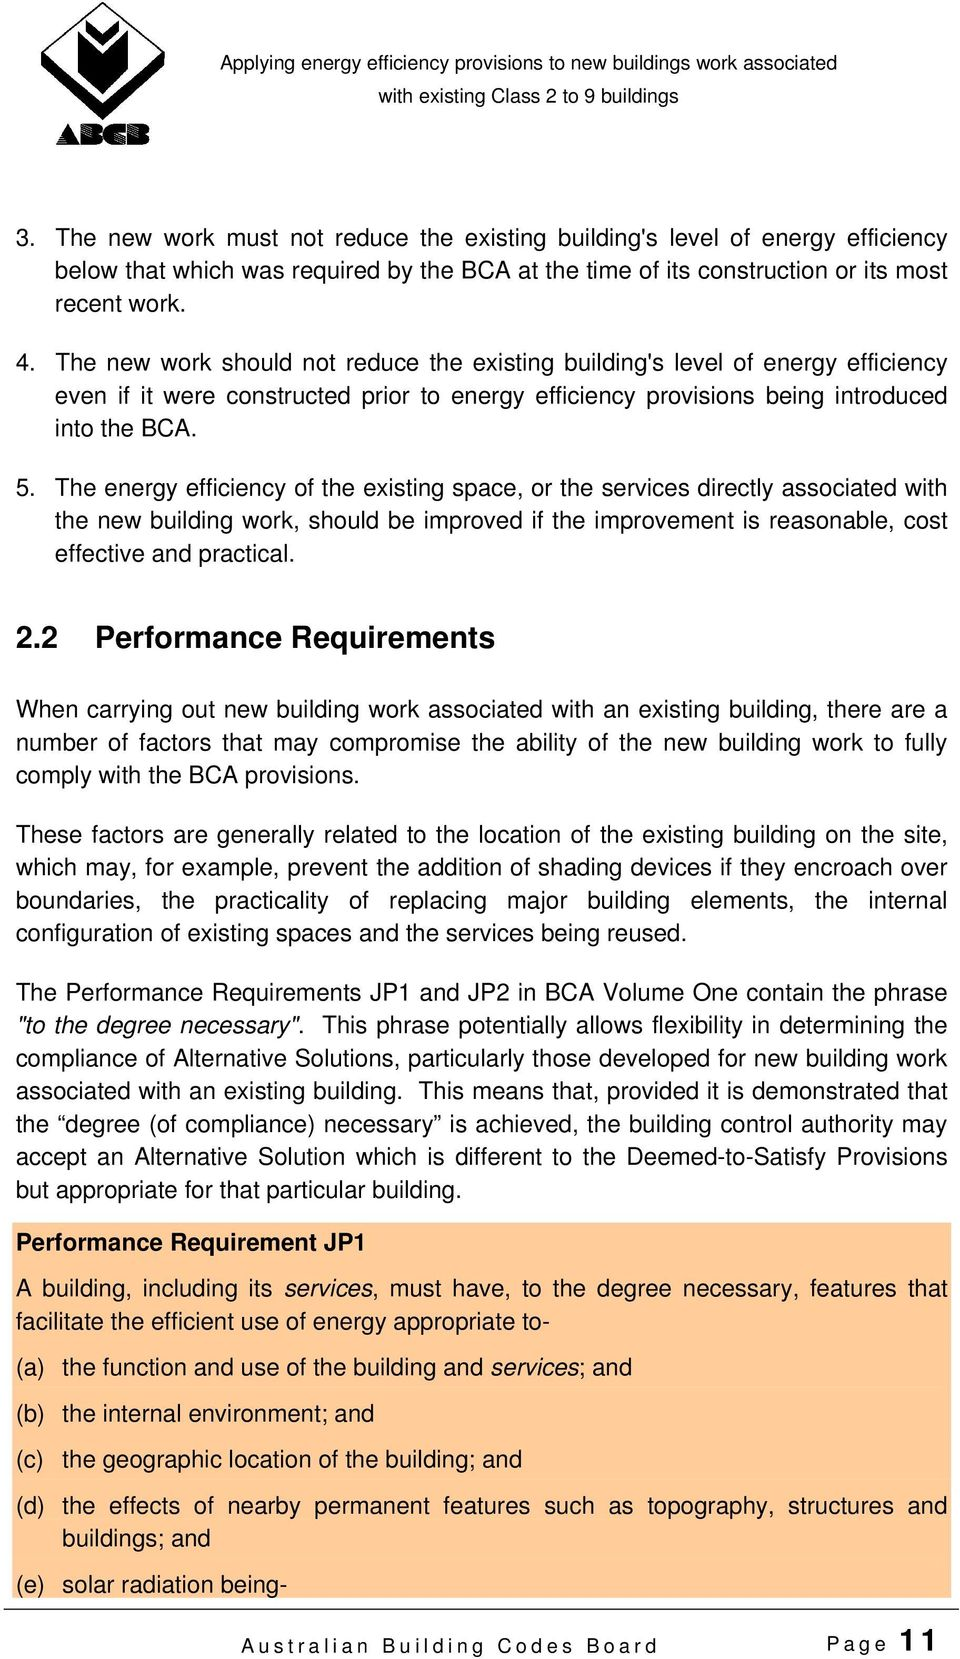 The energy efficiency of the existing space, or the services directly associated with the new building work, should be improved if the improvement is reasonable, cost effective and practical. 2.